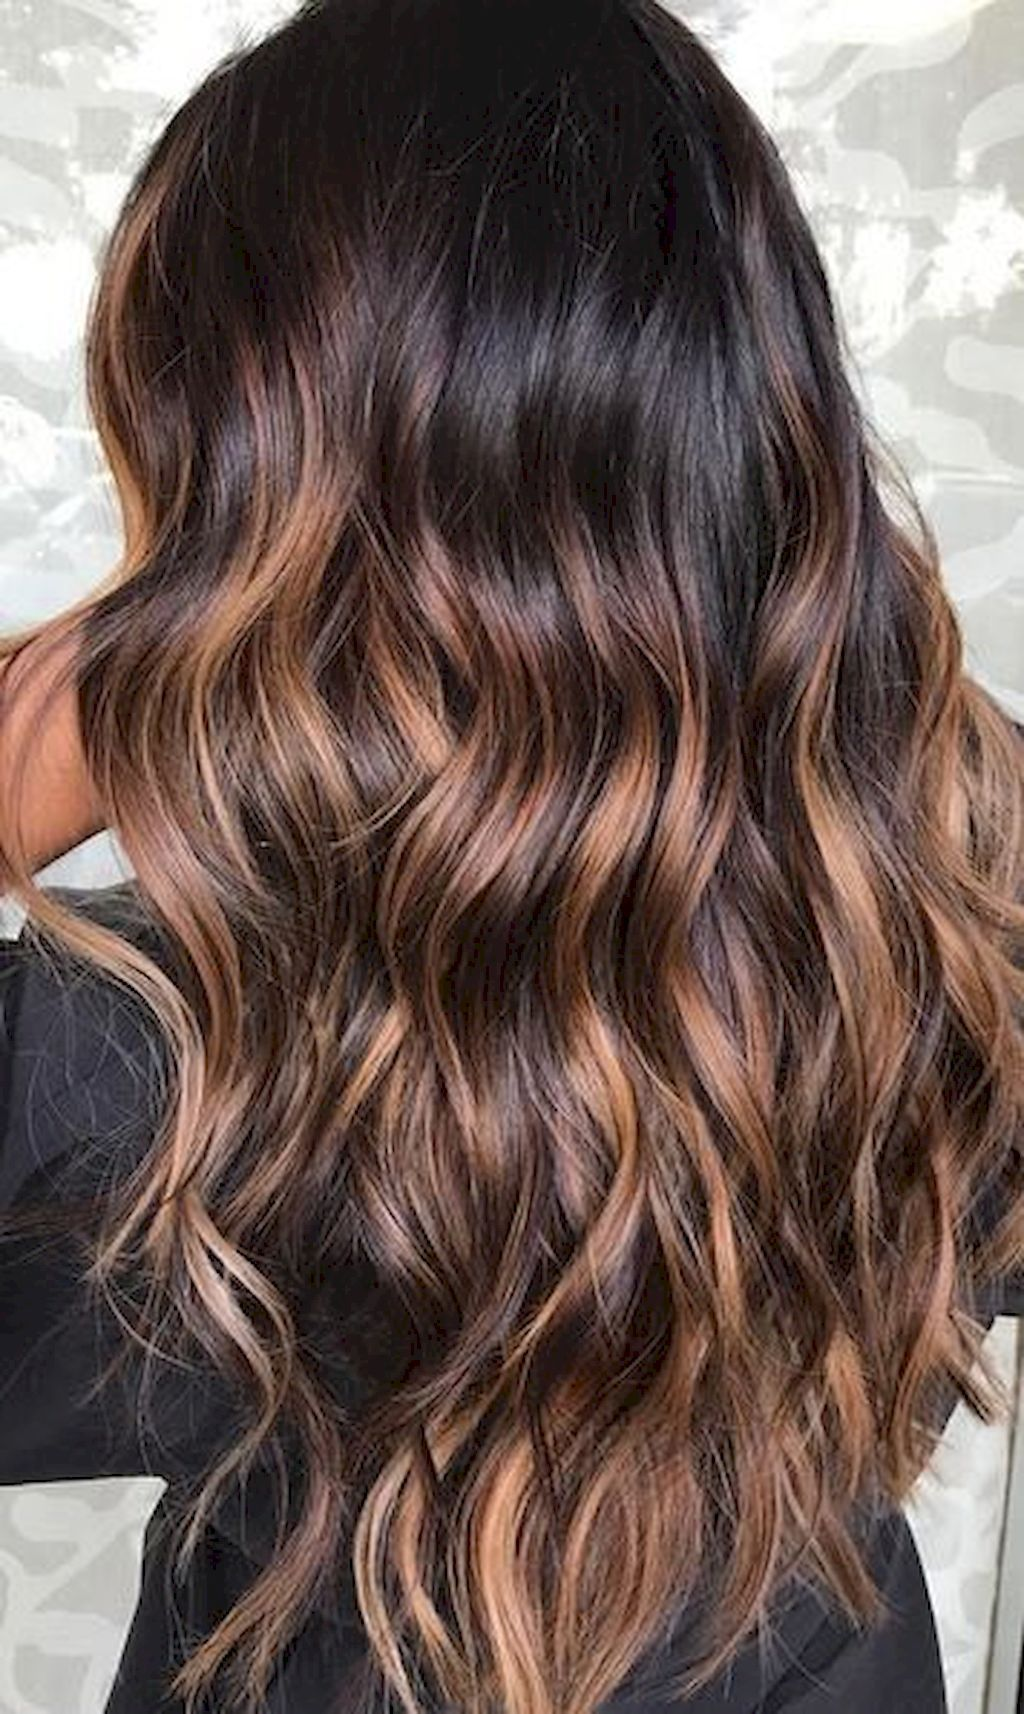 40 Hottest Balayage Hair Color Ideas For Brunettes Hair Hair